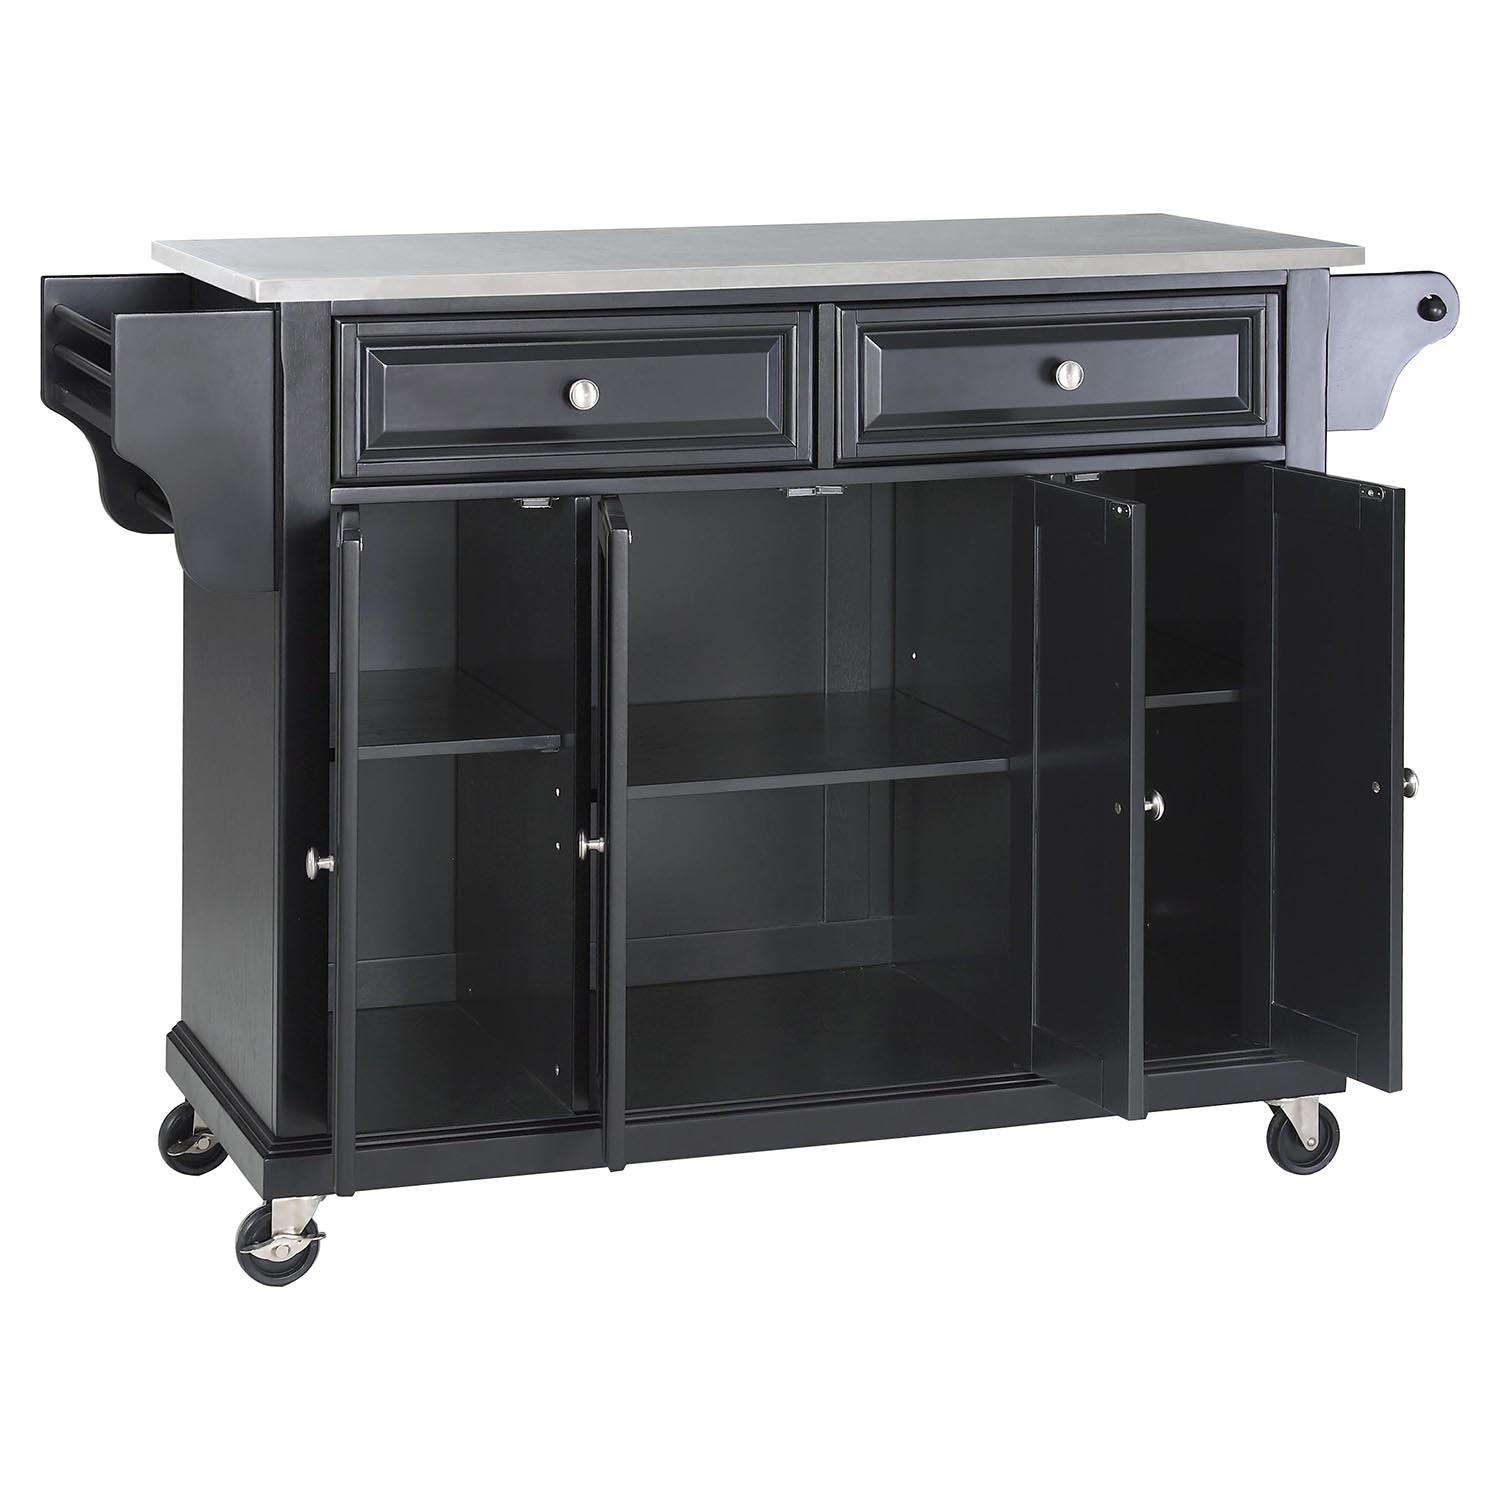 Stainless Steel Top Kitchen Cart Island  Casters, Black  DCG Stores